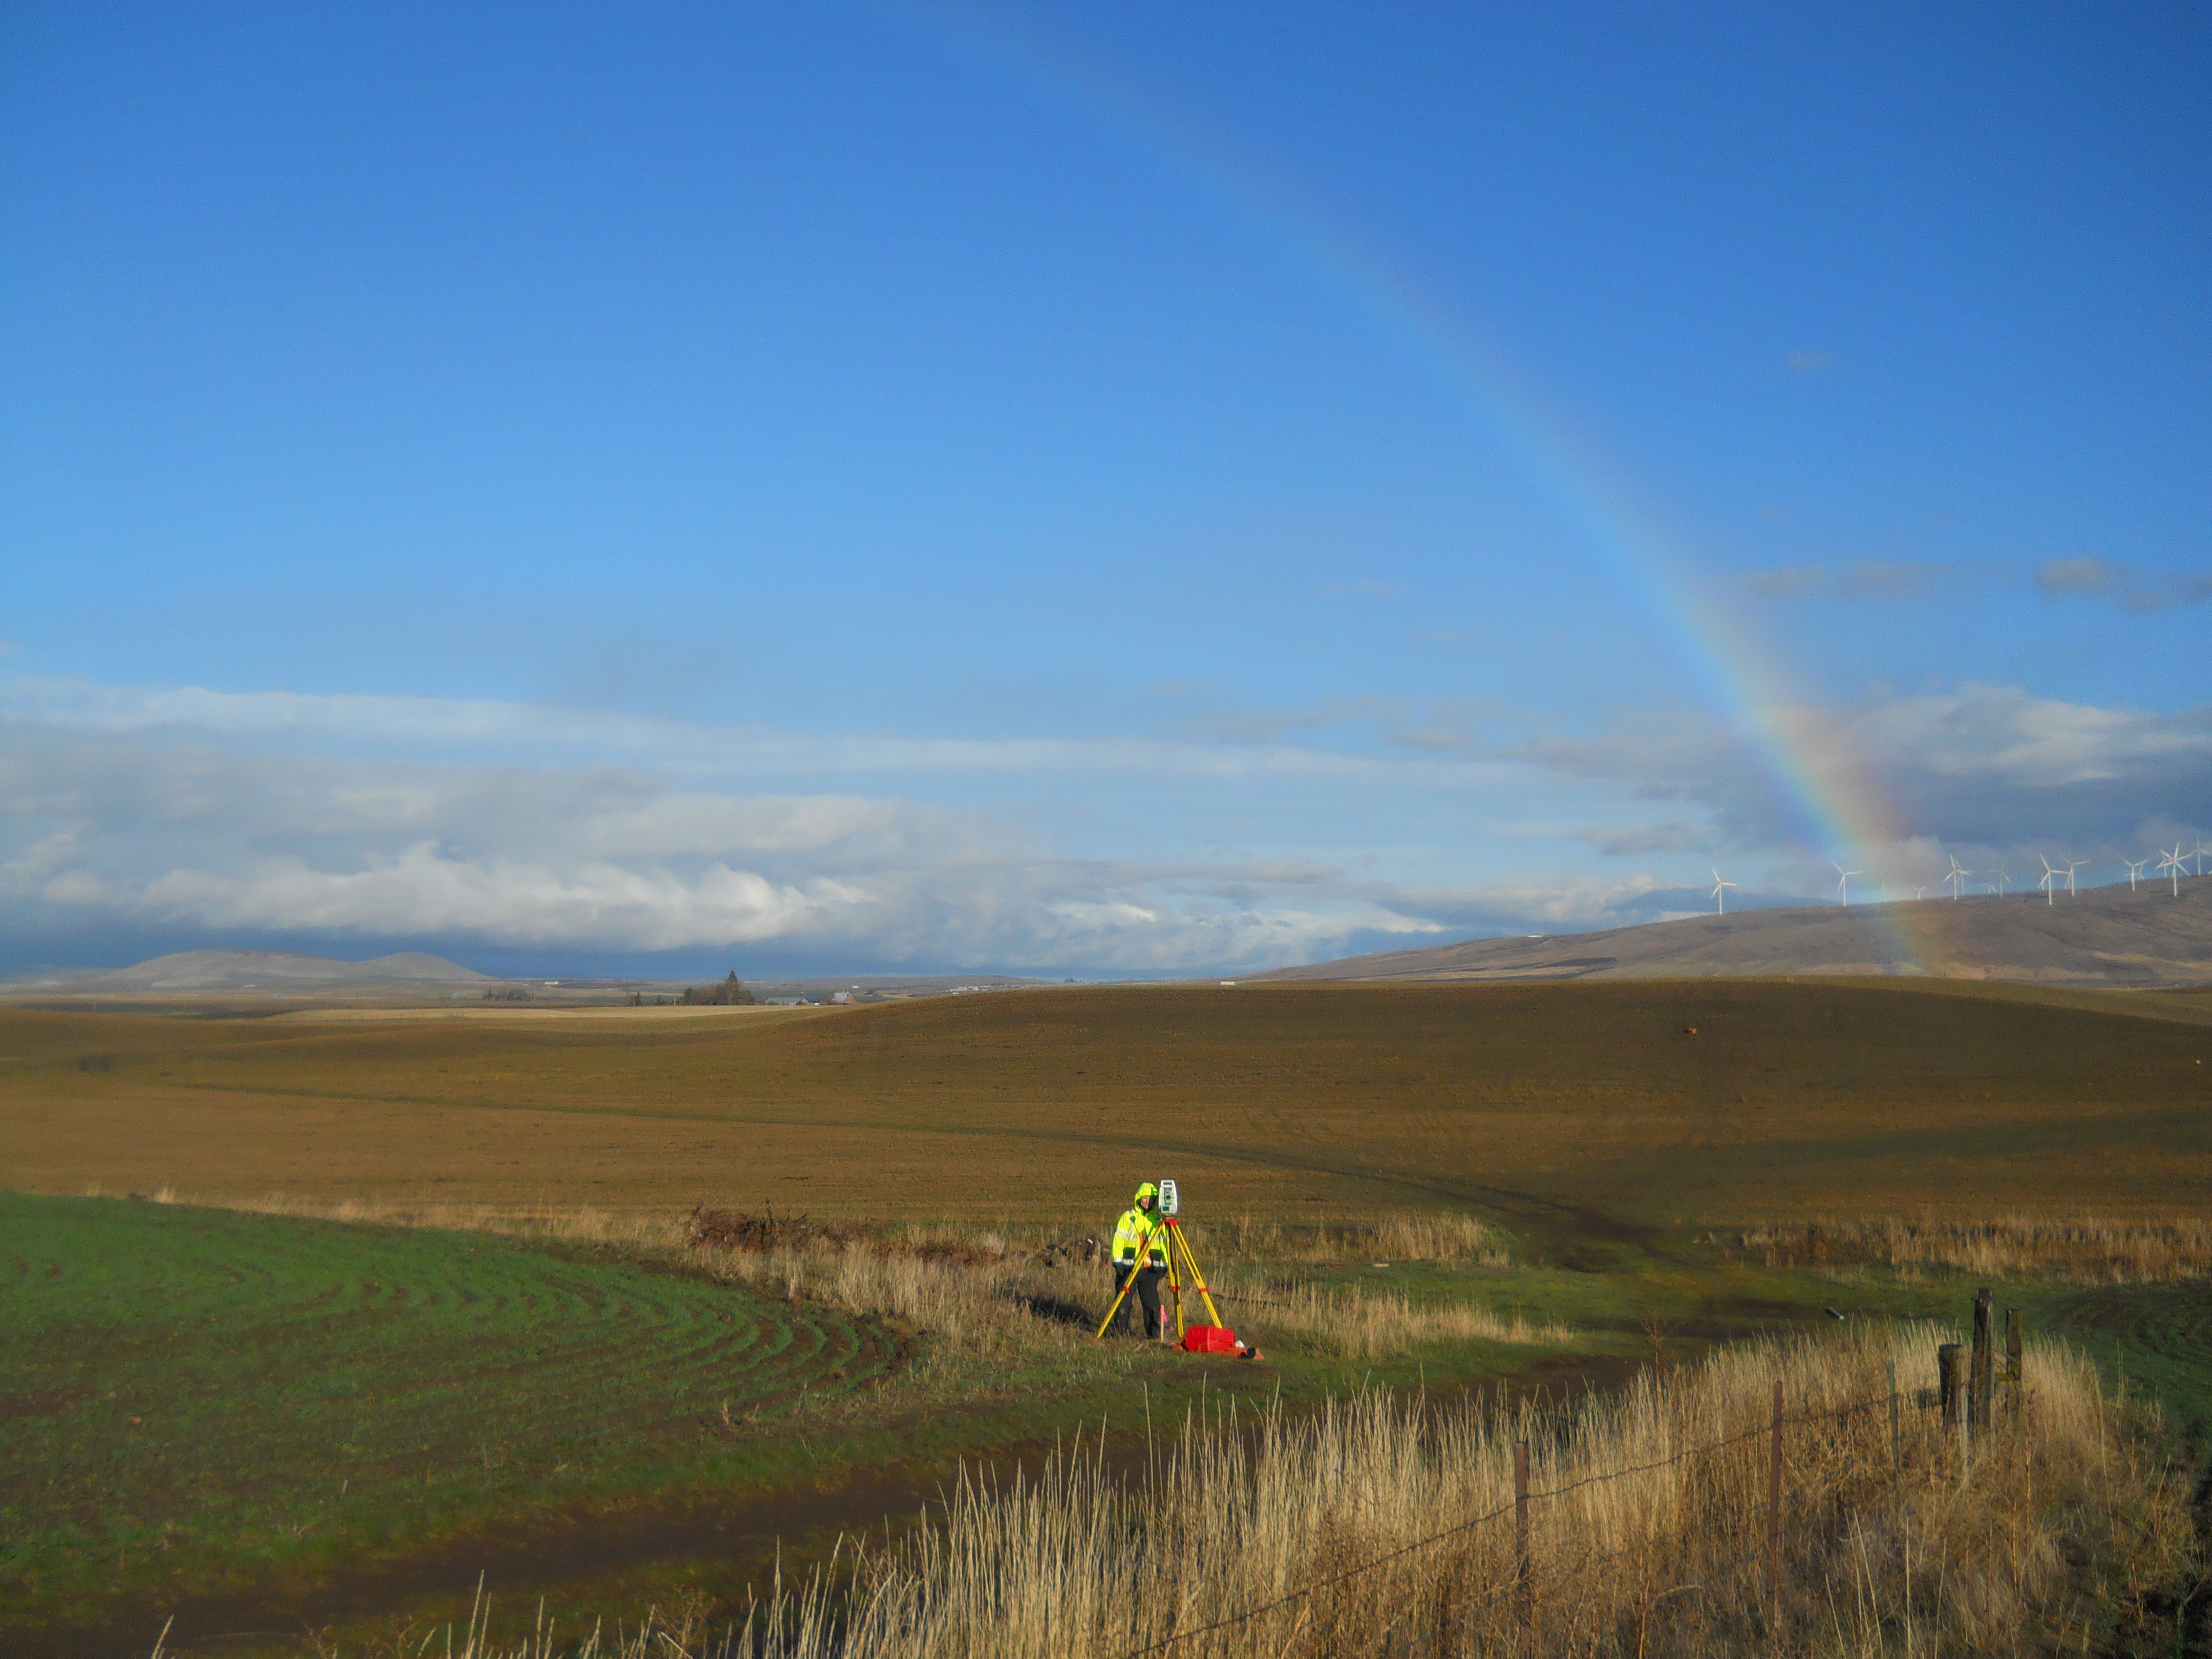 Surveyor in a field with rainbow